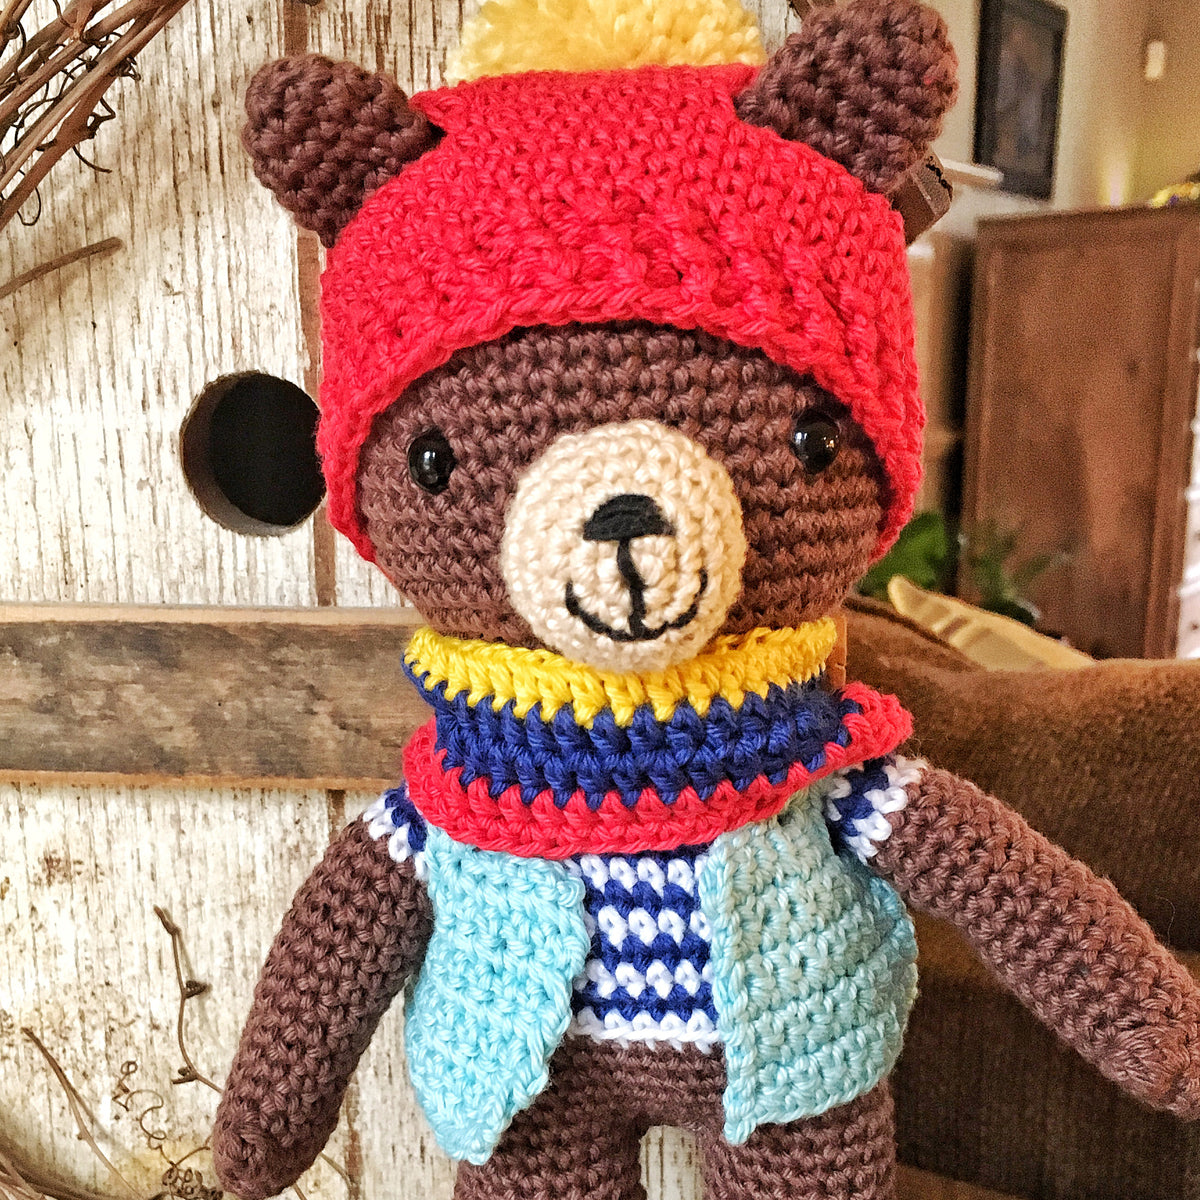 Hans the Grizzly Bear Amigurumi Crochet Class - THREE SESSIONS